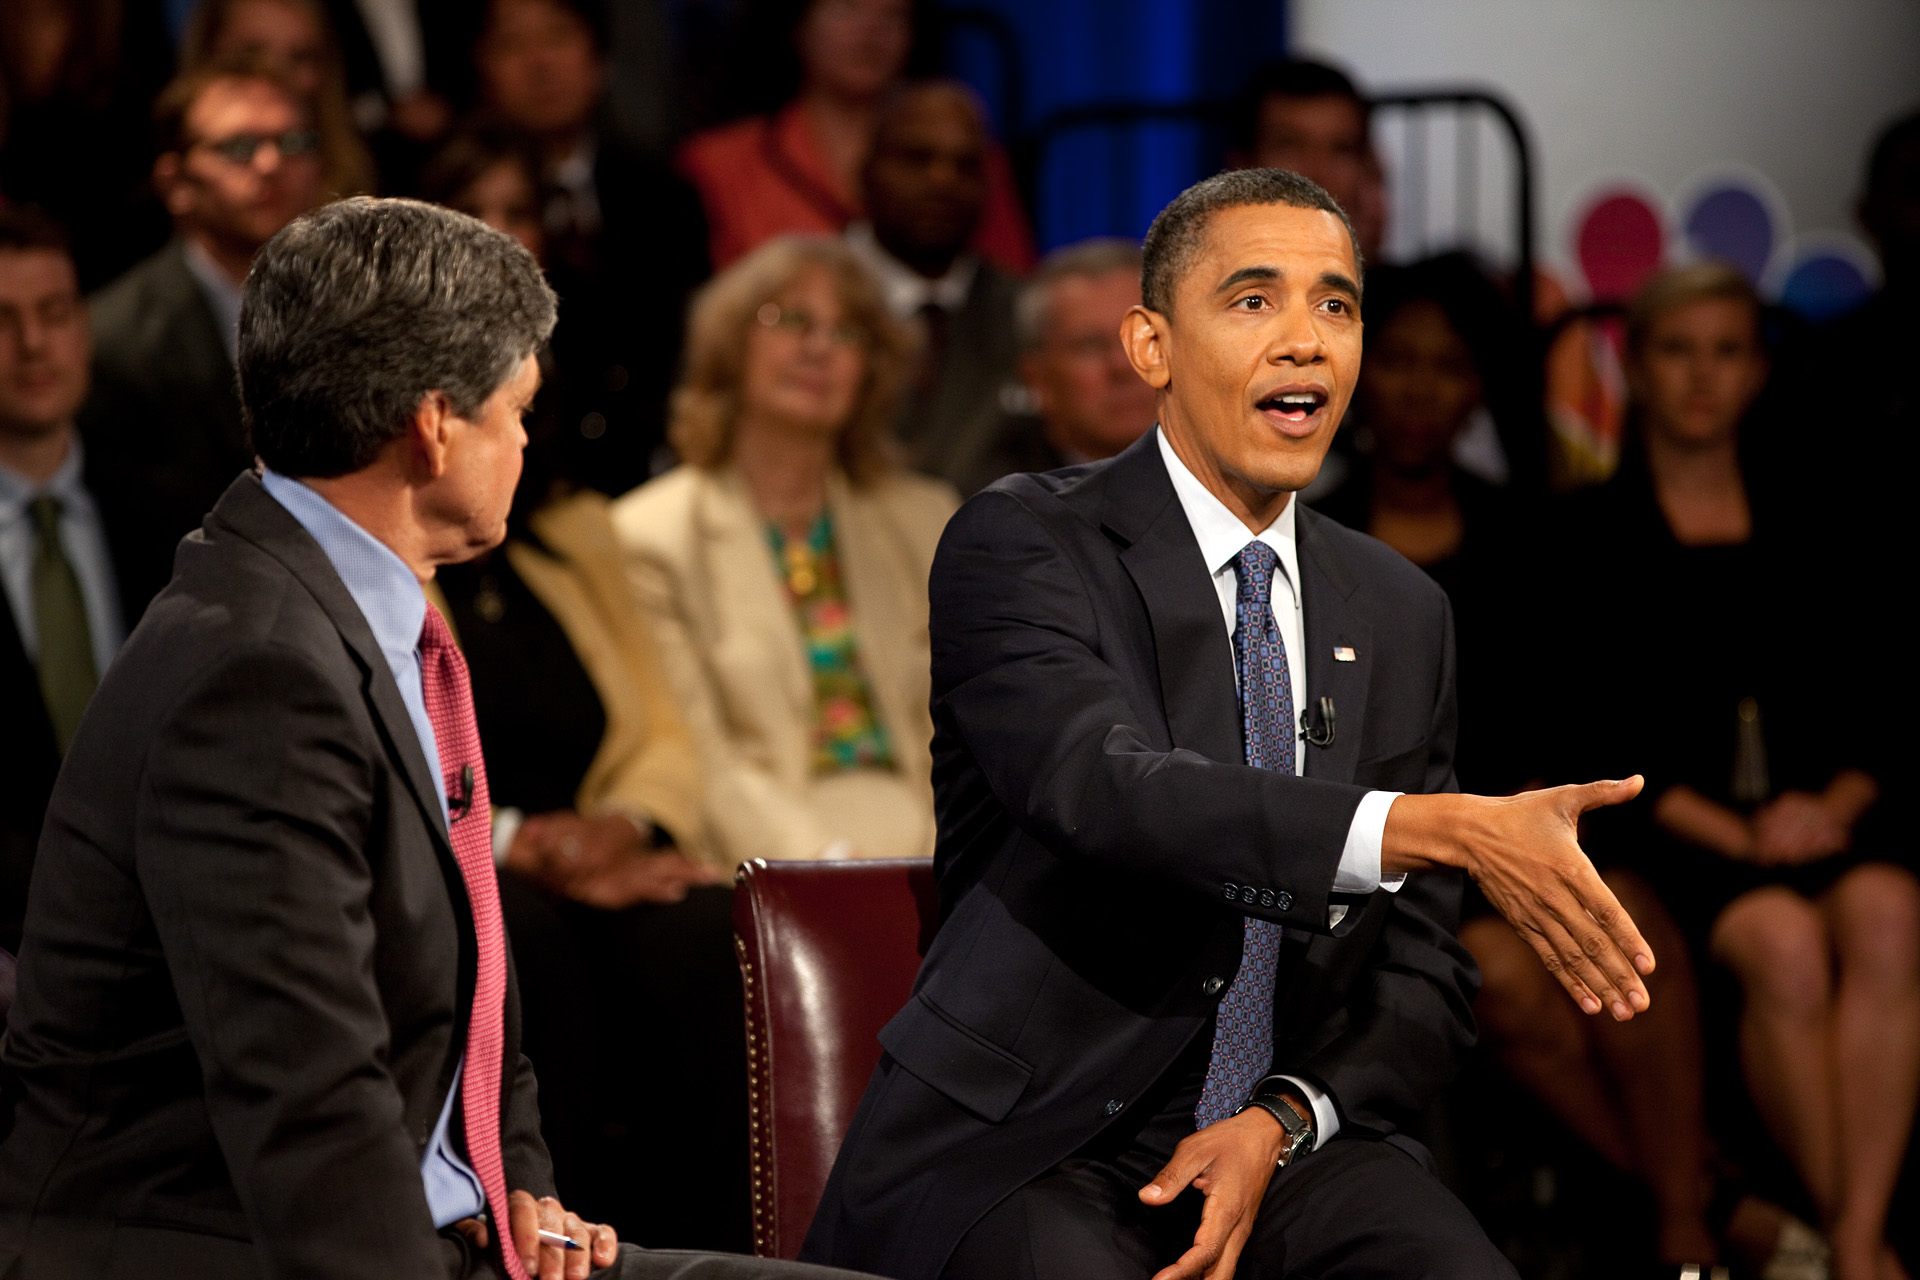 President Obama Gestures During an Answer at the CNBC Town Hall